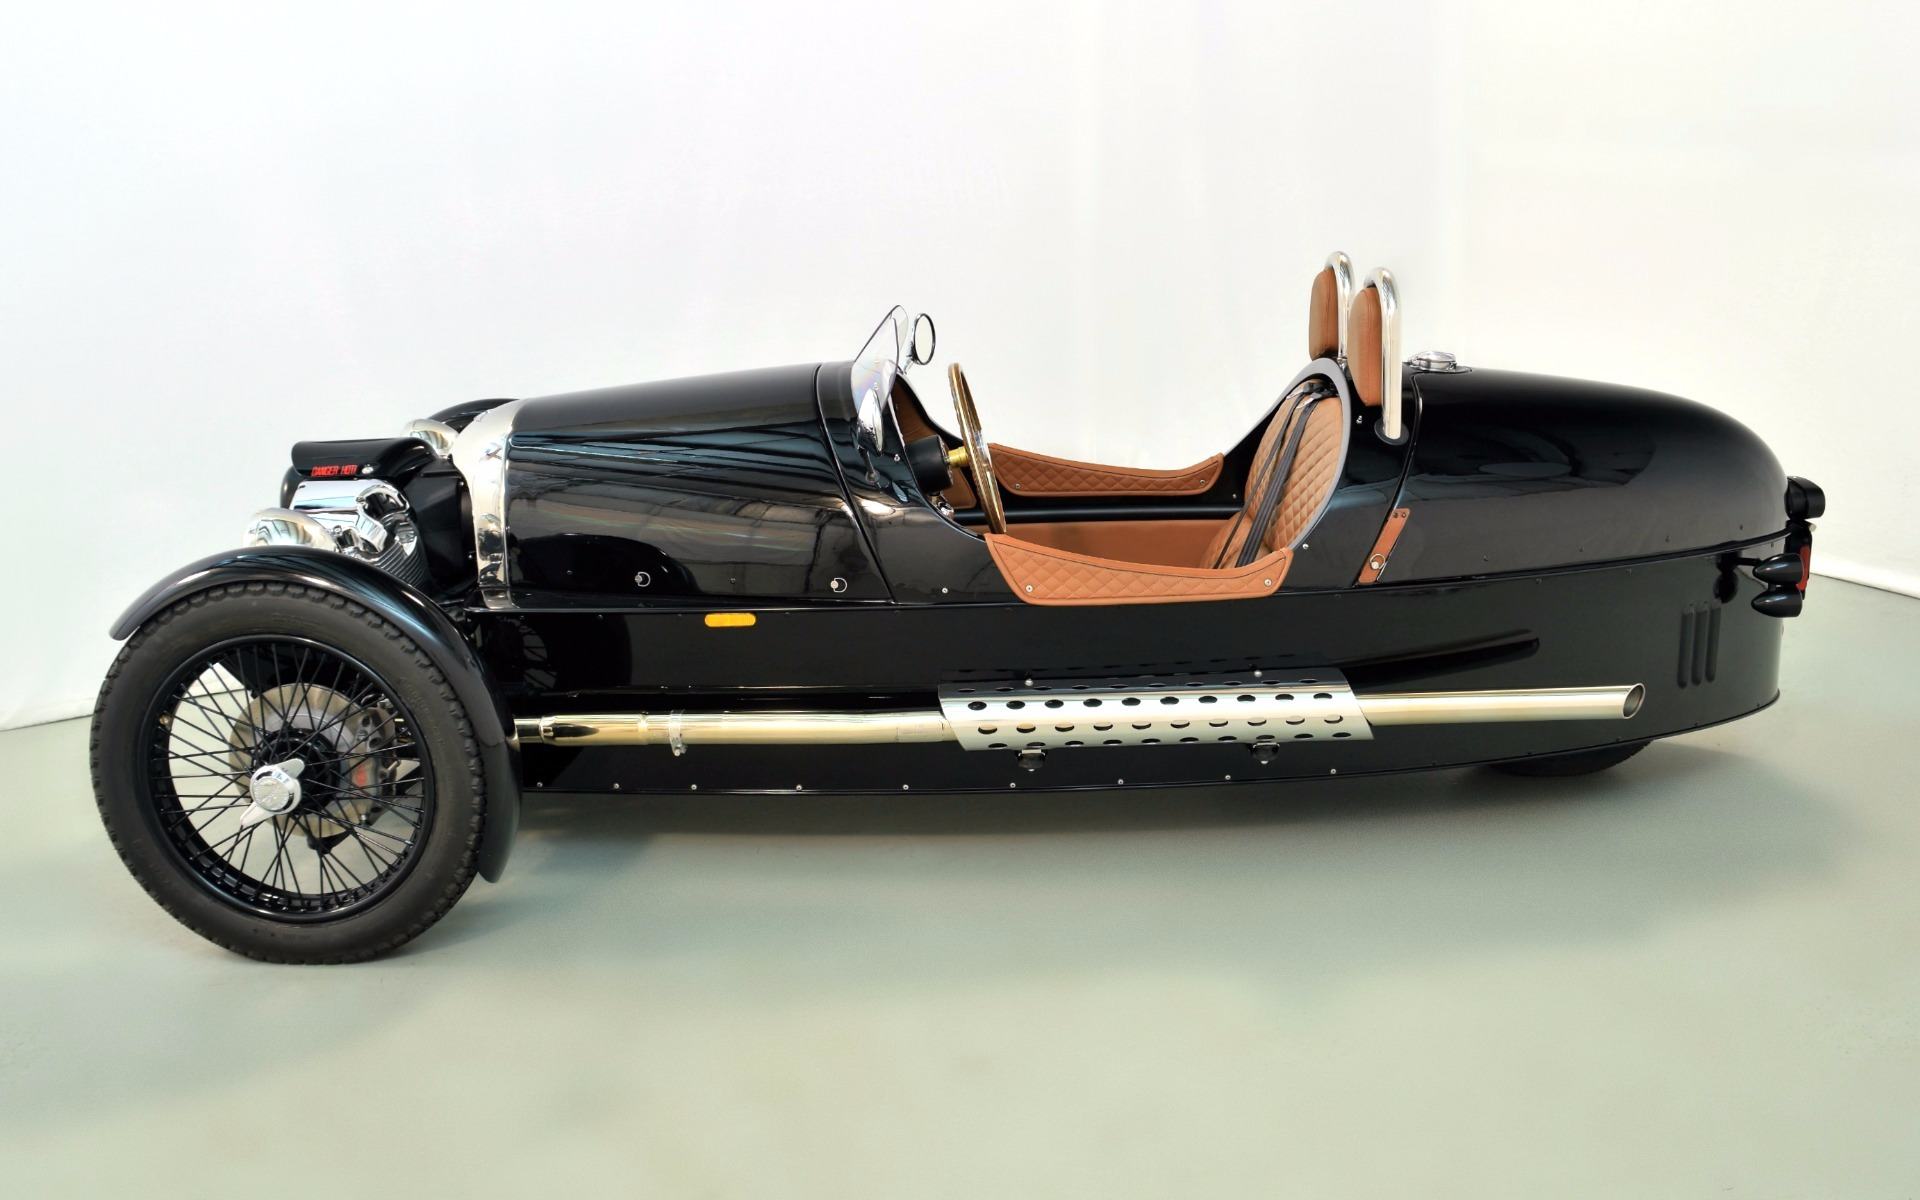 2015 Morgan 3 Wheeler For Sale in Norwell, MA 202428 ...